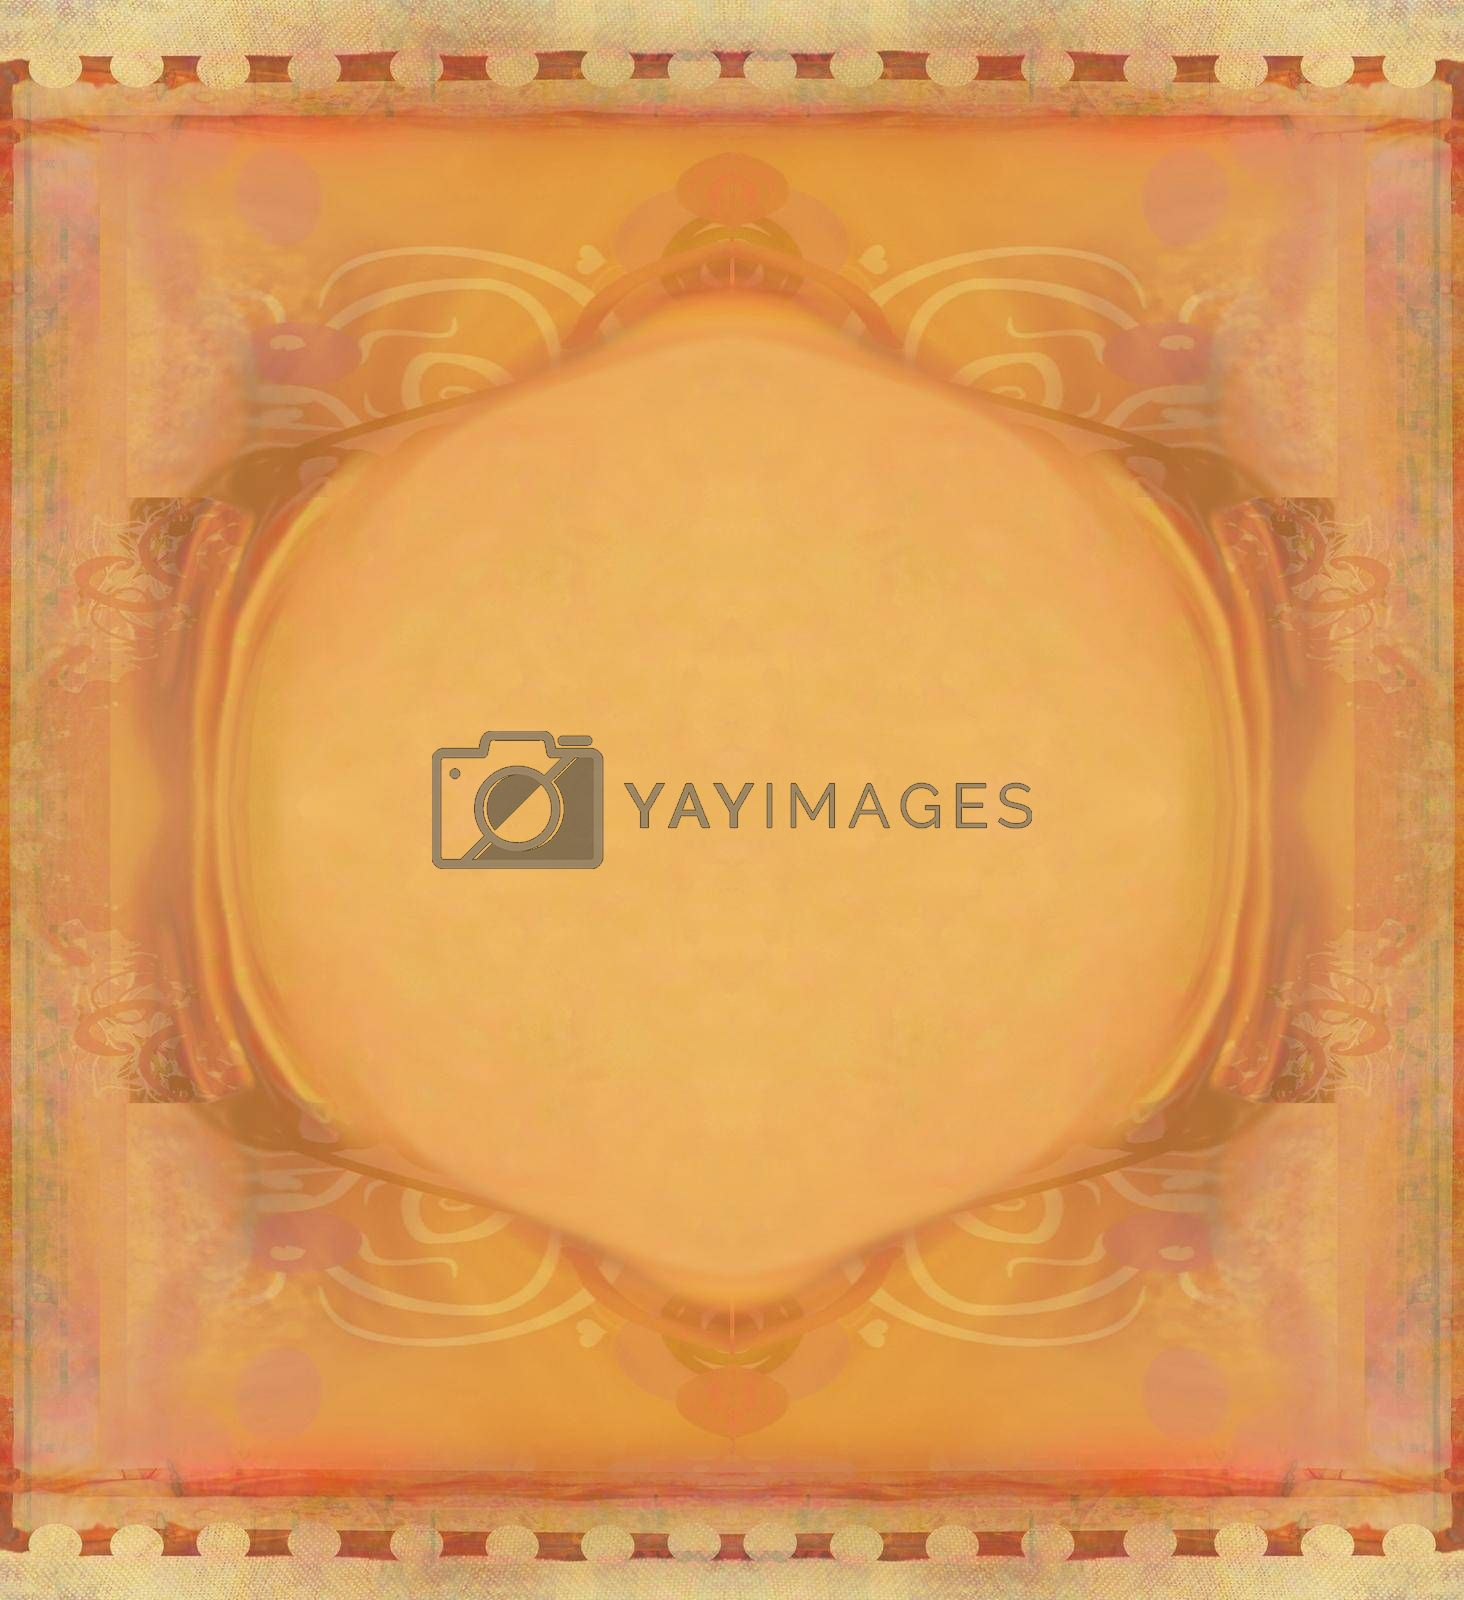 Royalty free image of Vintage Grunge Frame For Congratulation by JackyBrown